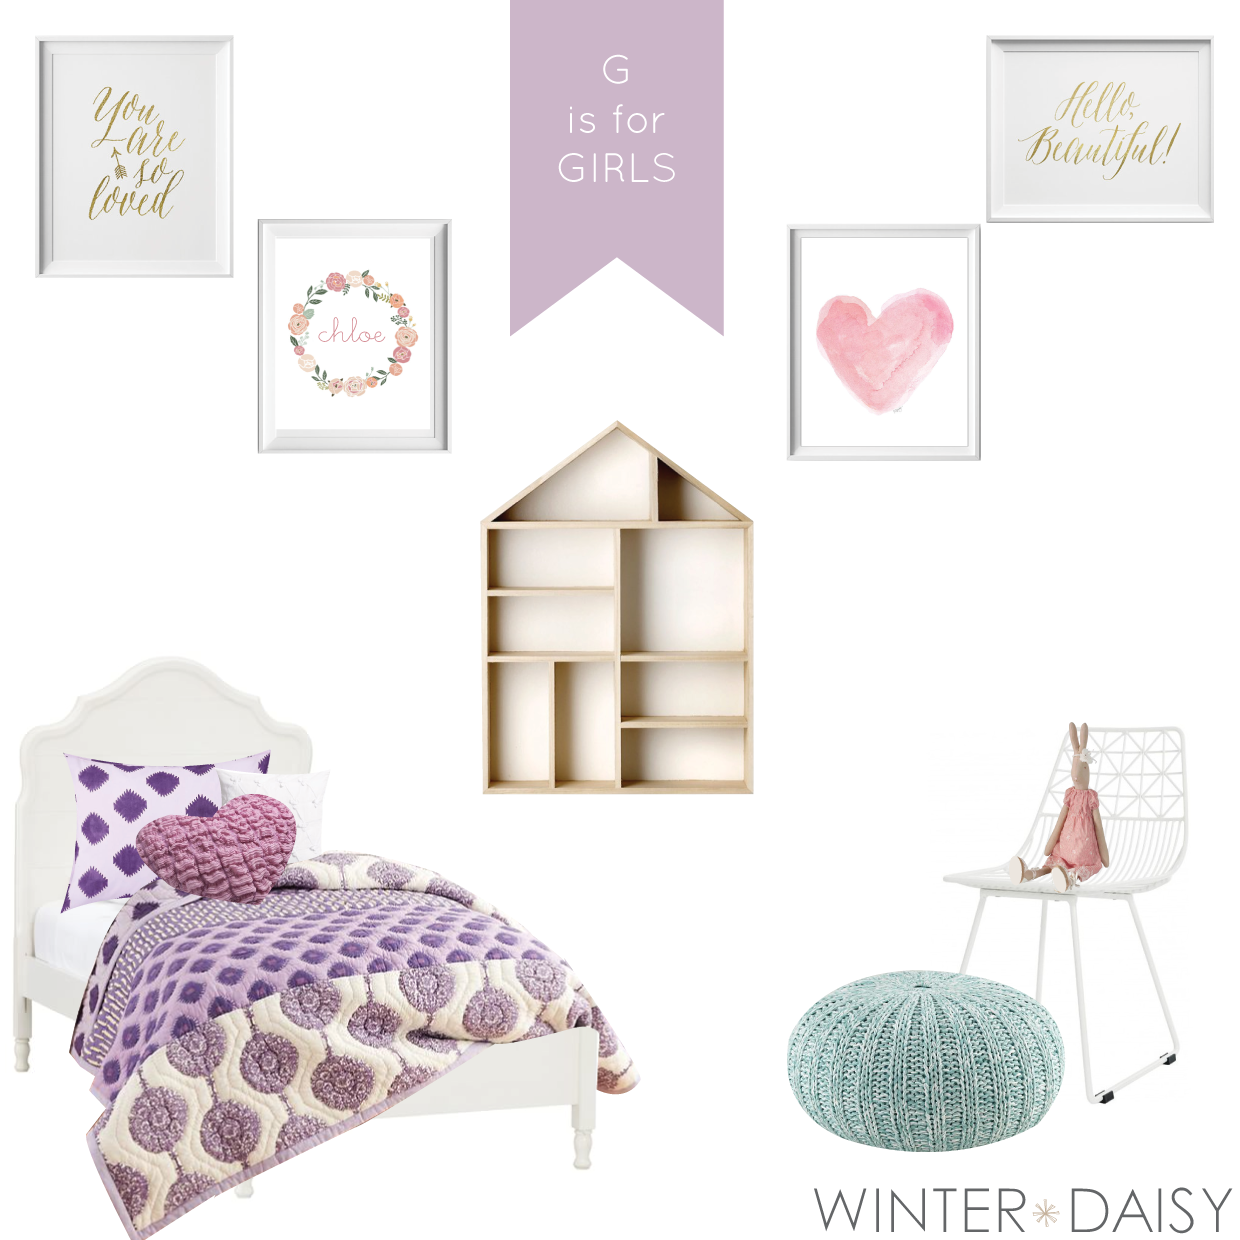 winterdaisy-interior-design-kids-vancouver-g-is-for-girls